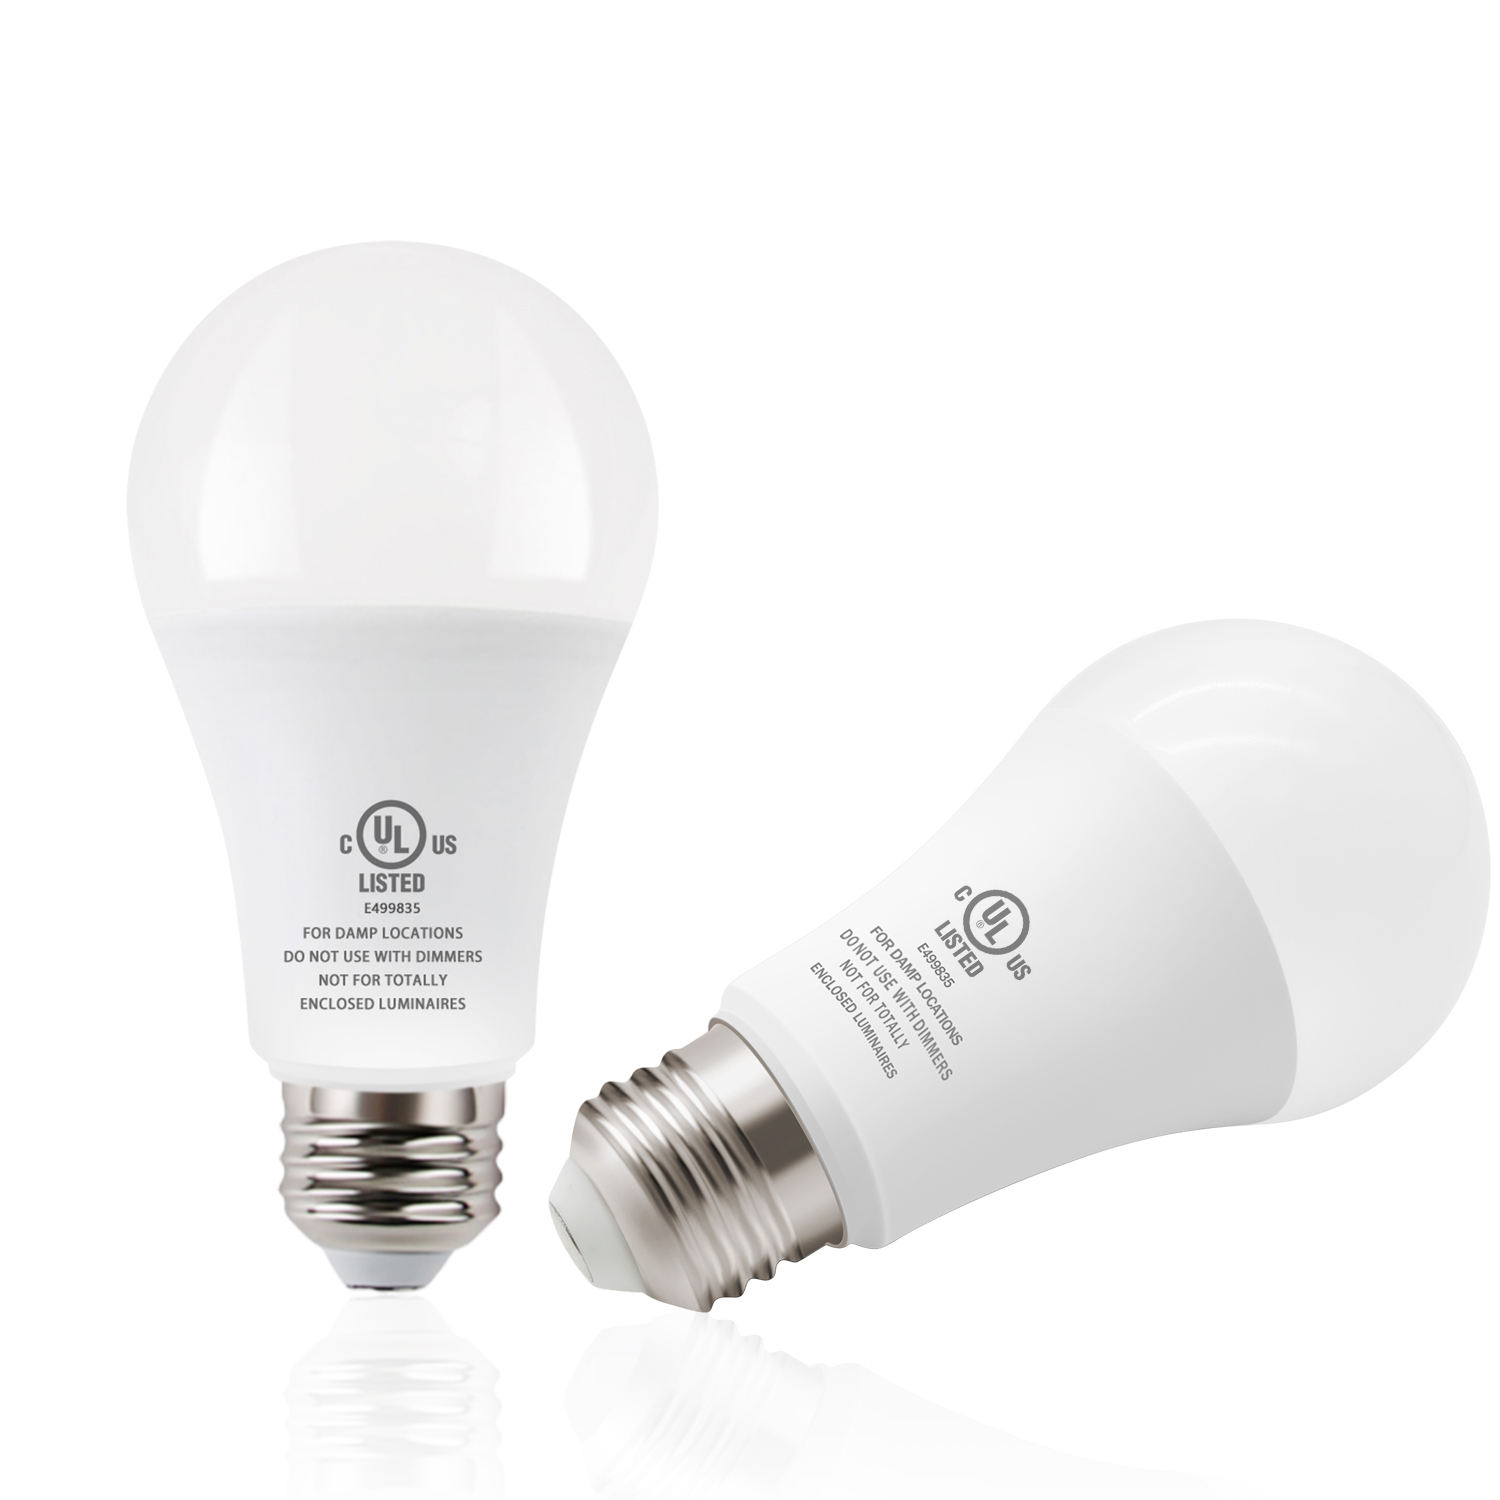 Market hot sell new patent products E26 E27 B22 9W Intelligent emergency rechargeable led bulb with built-in battery